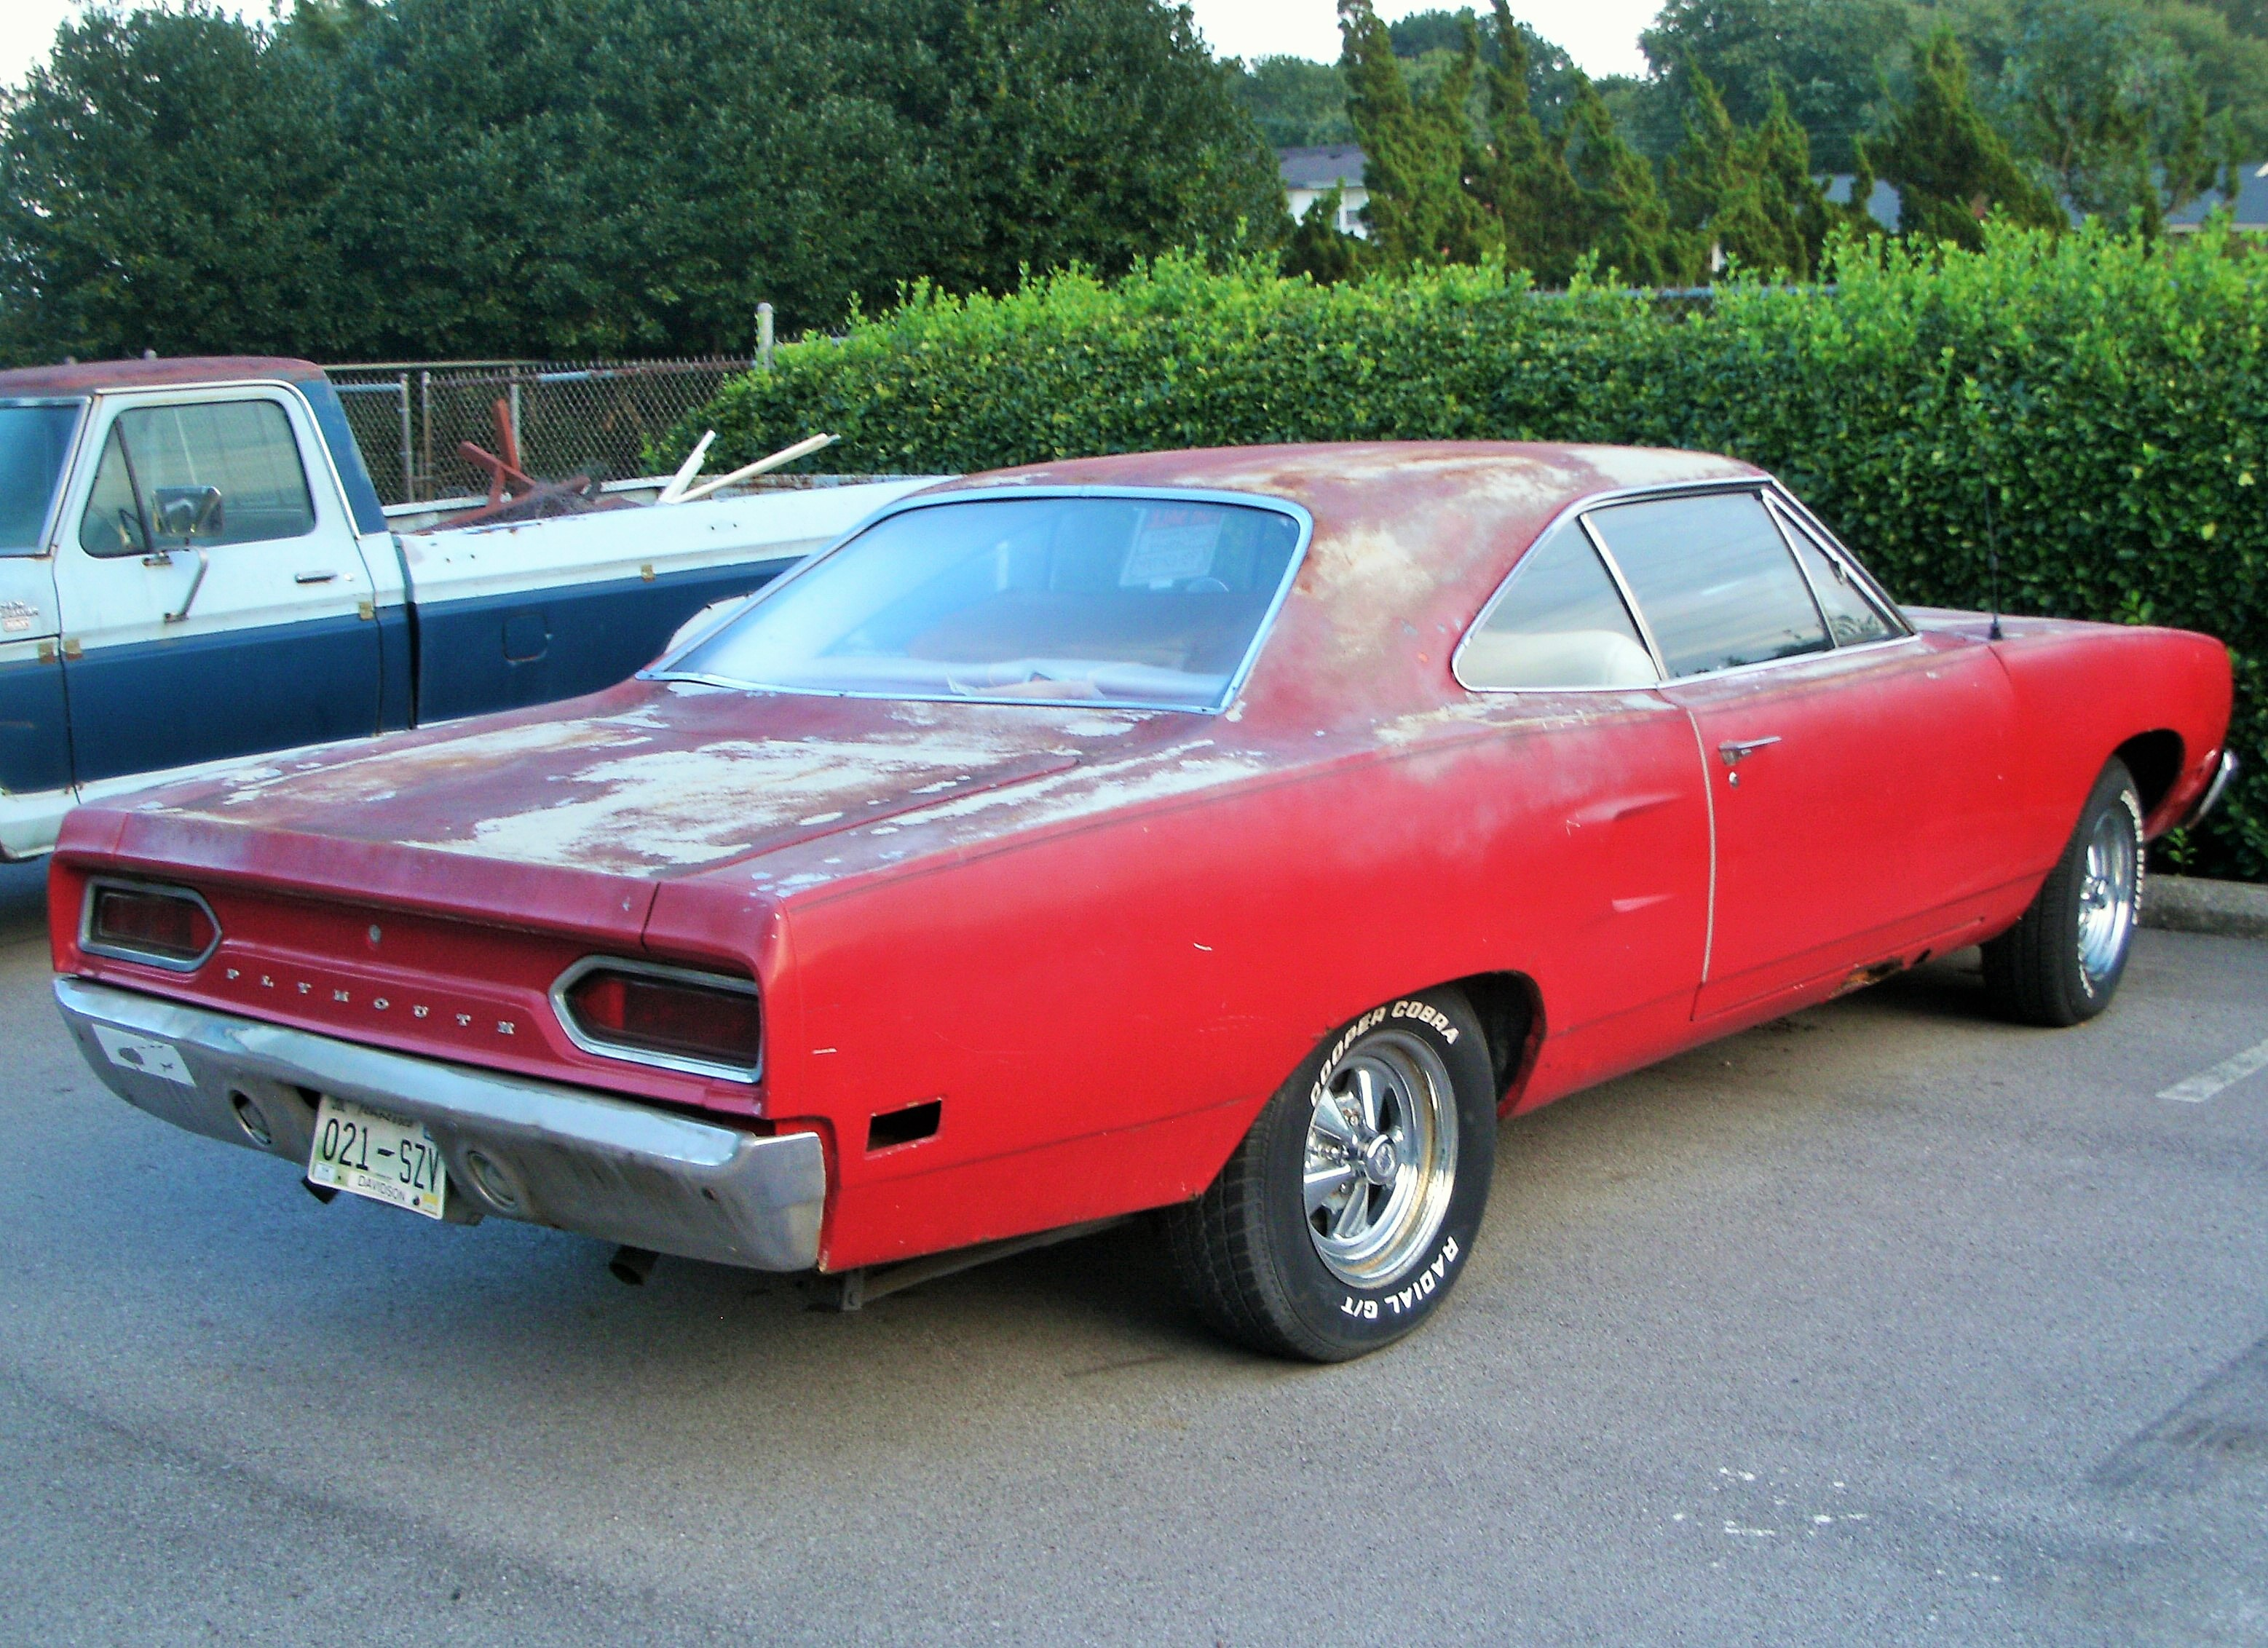 1970 Plymouth For Sale In Preparation For A New Adventure